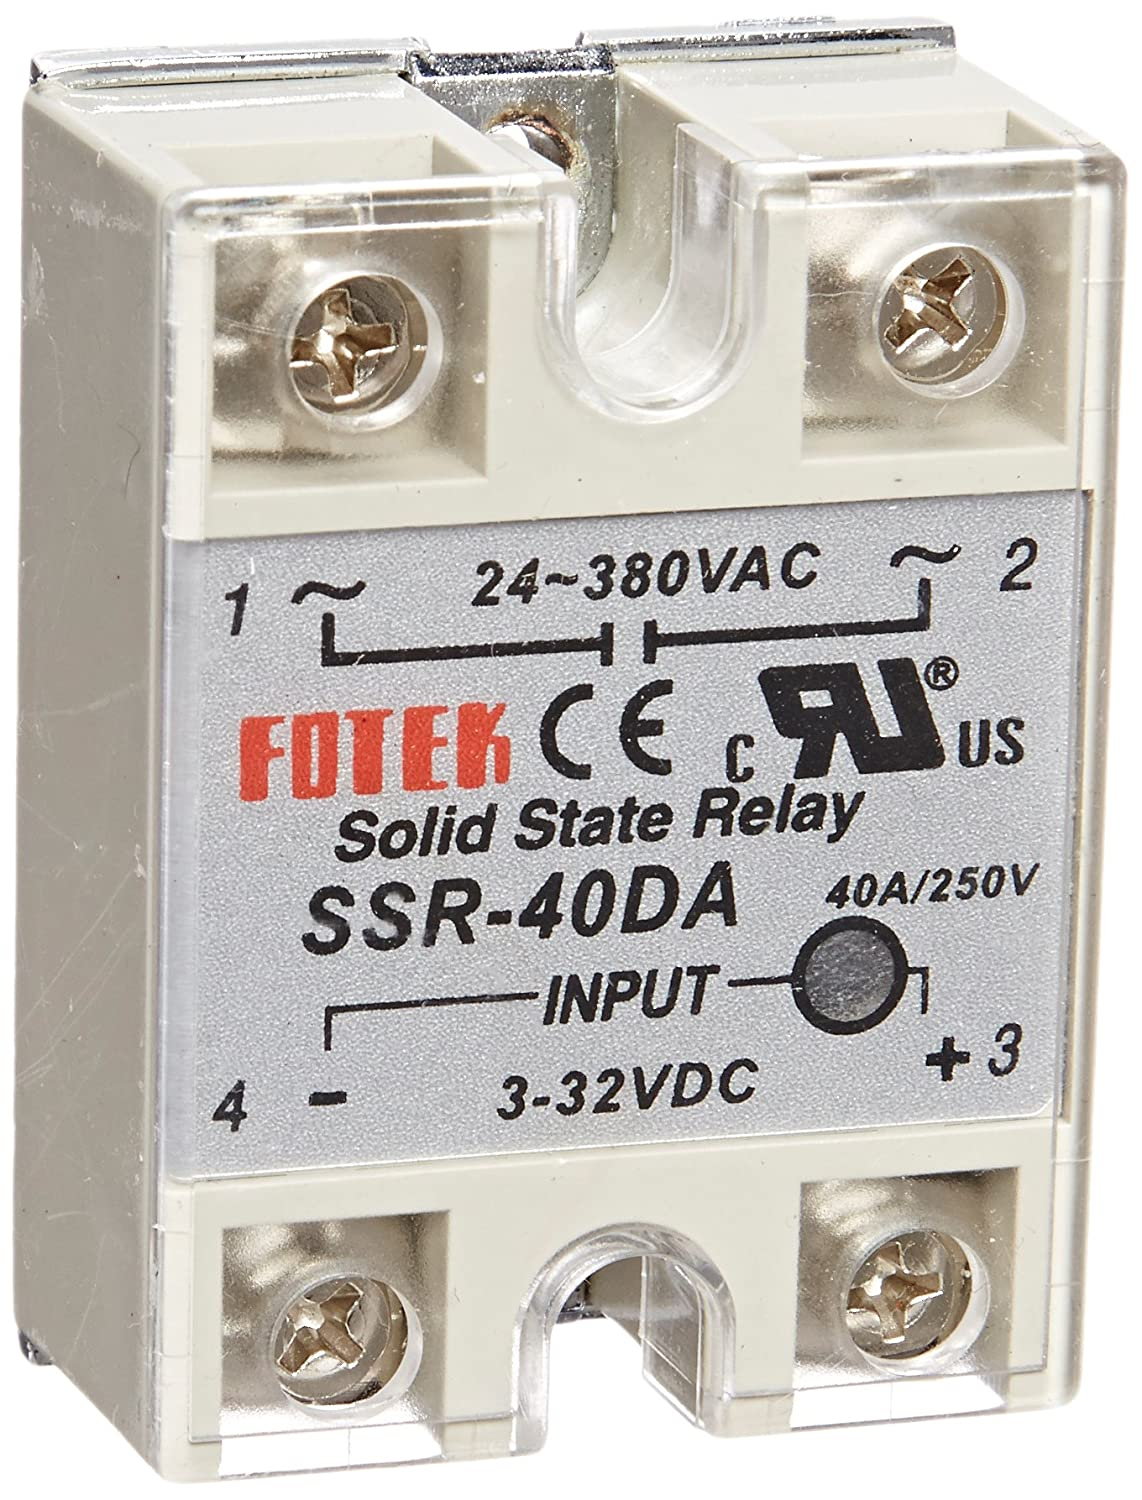 Lightobject ESSR40DAC Solid State Relay DC In AC Out 40 Amp - Solid State Relay Brands